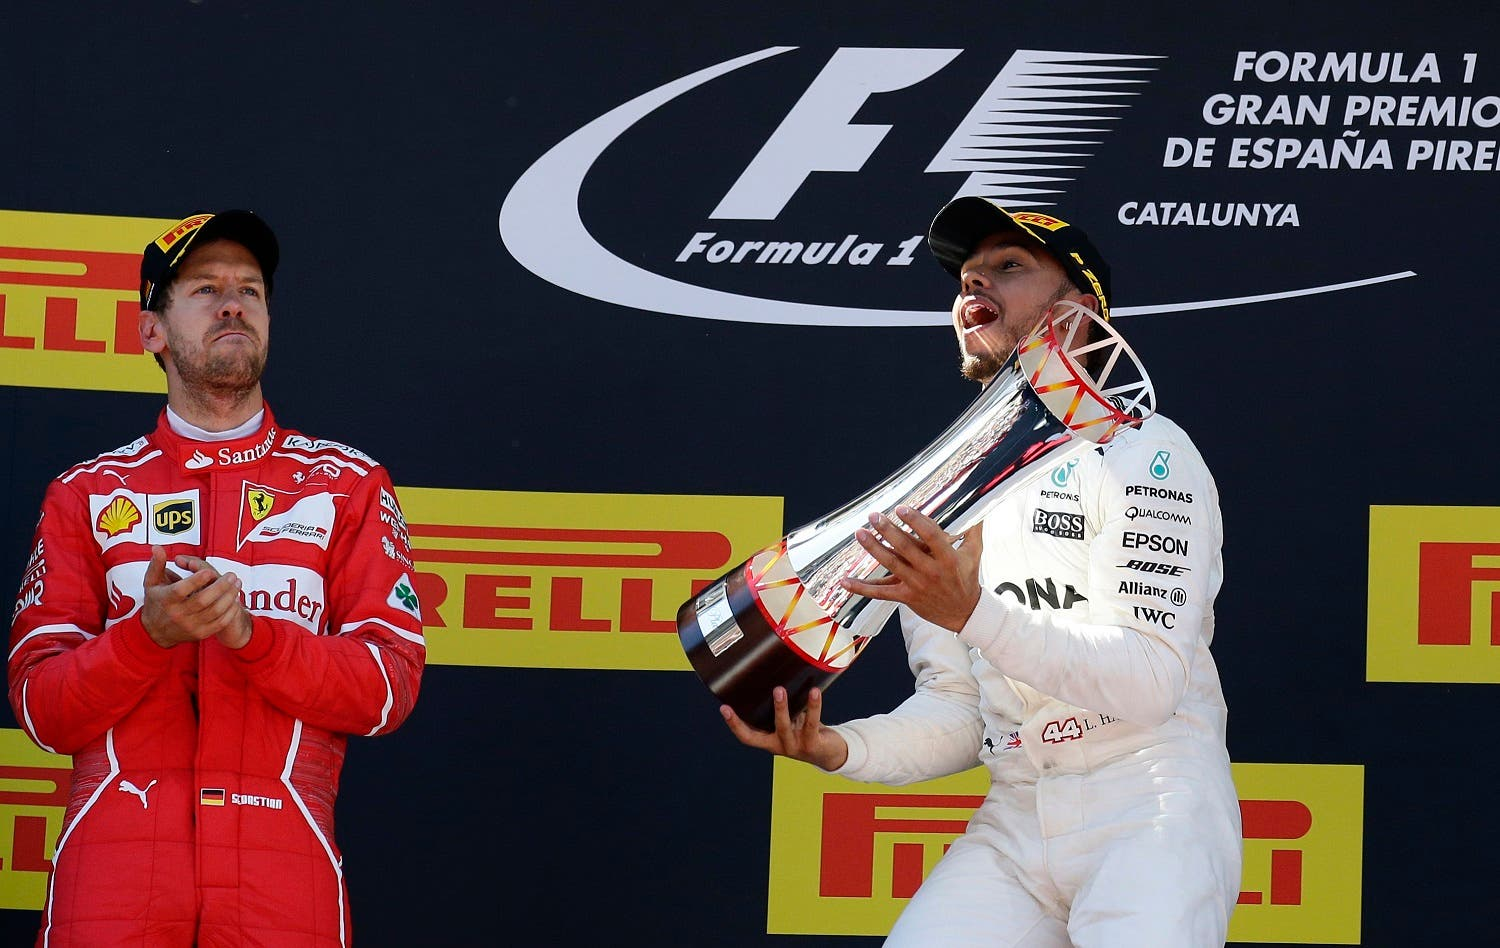 Mercedes driver Lewis Hamilton  (right), and Ferrari's  Sebastian Vettel of Germany celebrate after placing first and second at the Spanish Formula One GP. (AP)